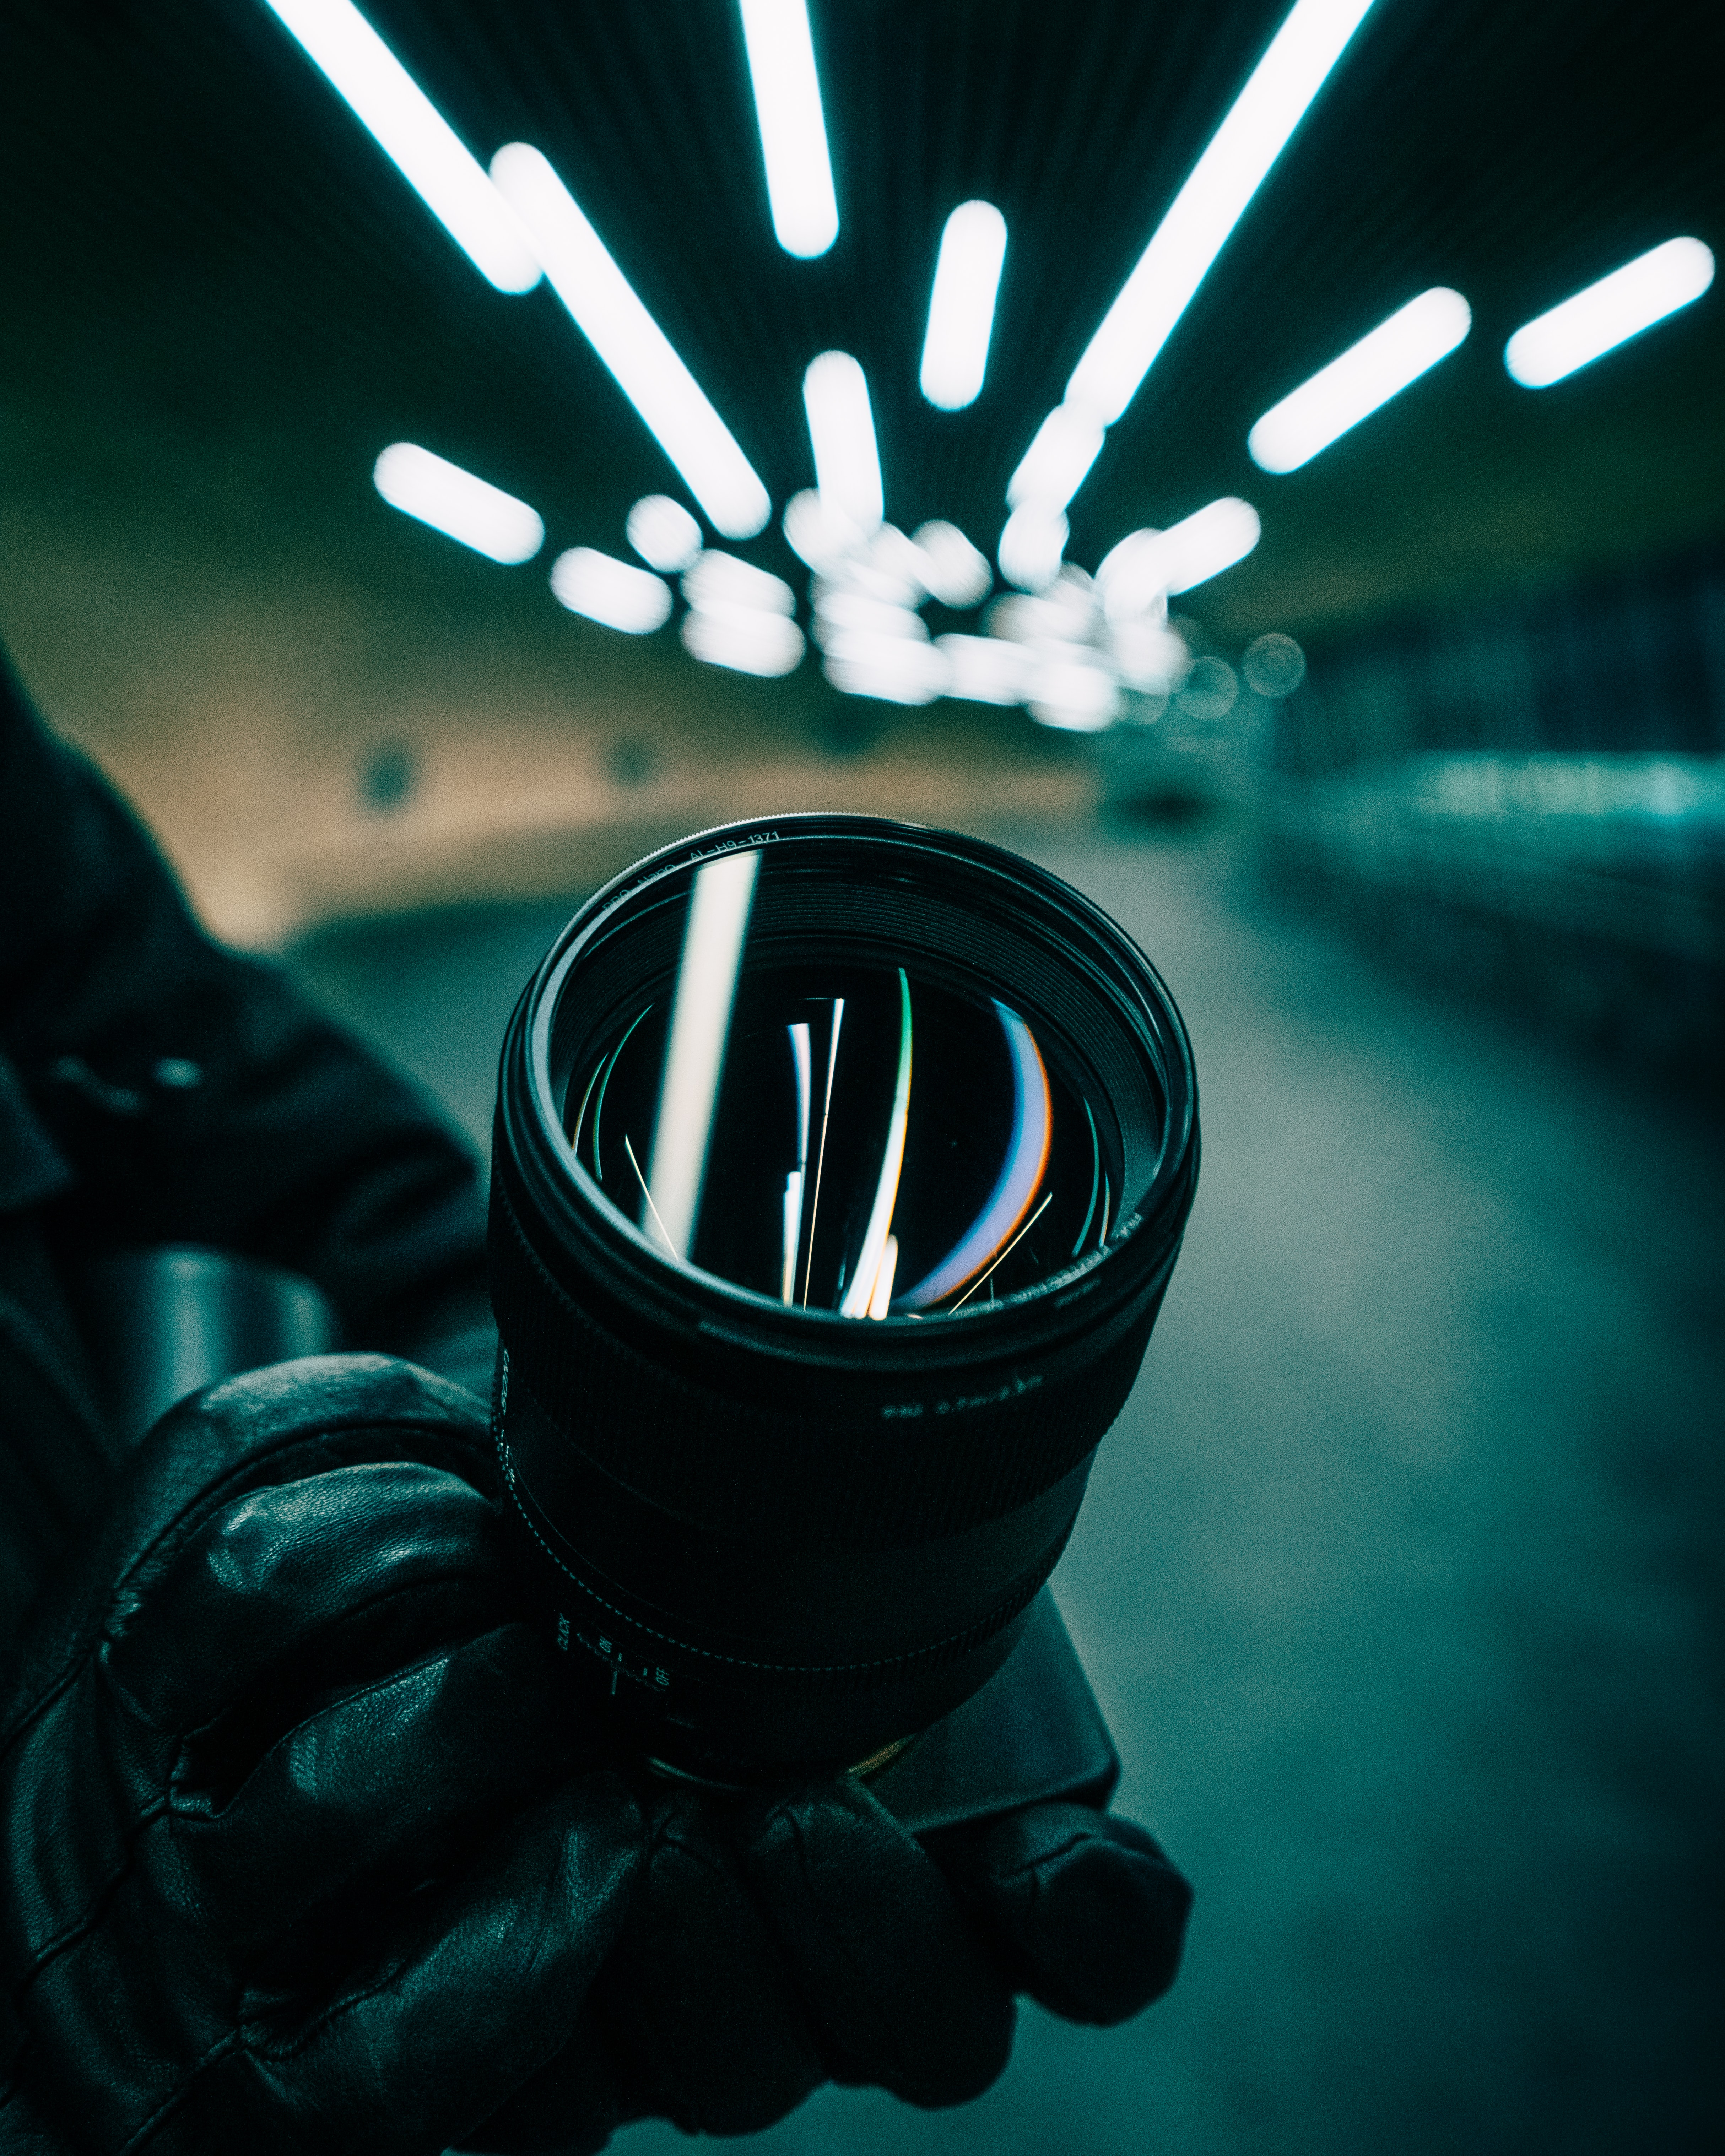 93694 download wallpaper Lens, Reflection, Miscellanea, Miscellaneous, Hands, Lamp, Camera, Lamps screensavers and pictures for free